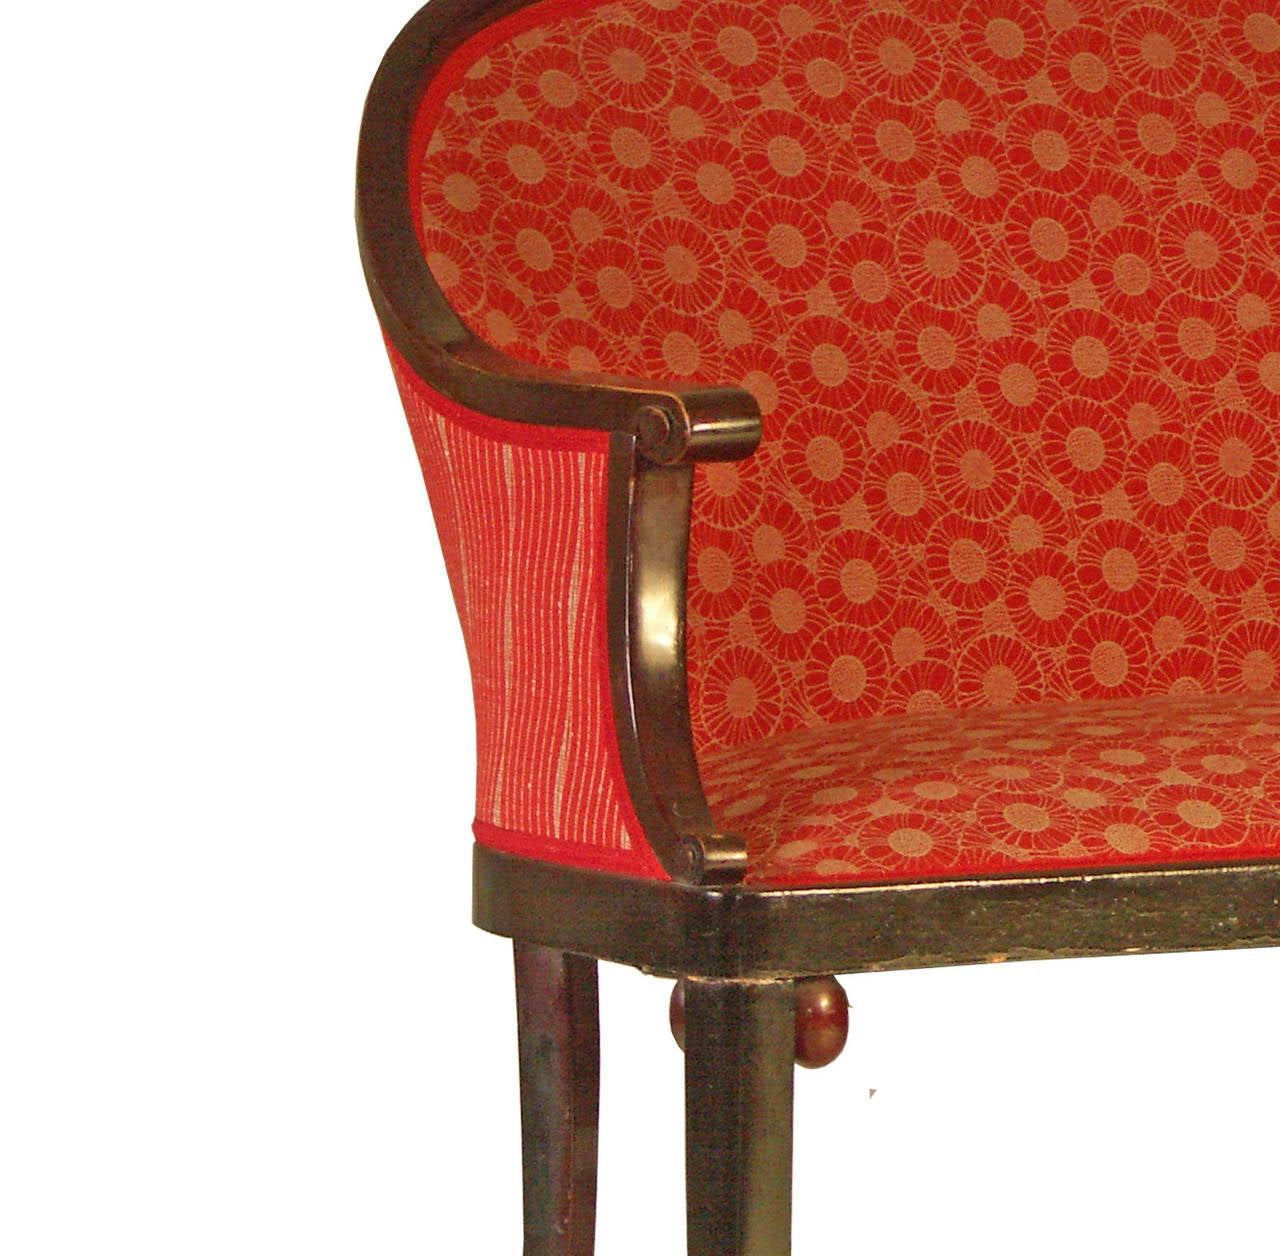 Attributed to either Josef Hoffmann or Otto Prutscher as both of the designers did similar objects in bentwood at this time, and both were using balls or olives for joining the legs with the body of a furniture. Upholstery renovated.